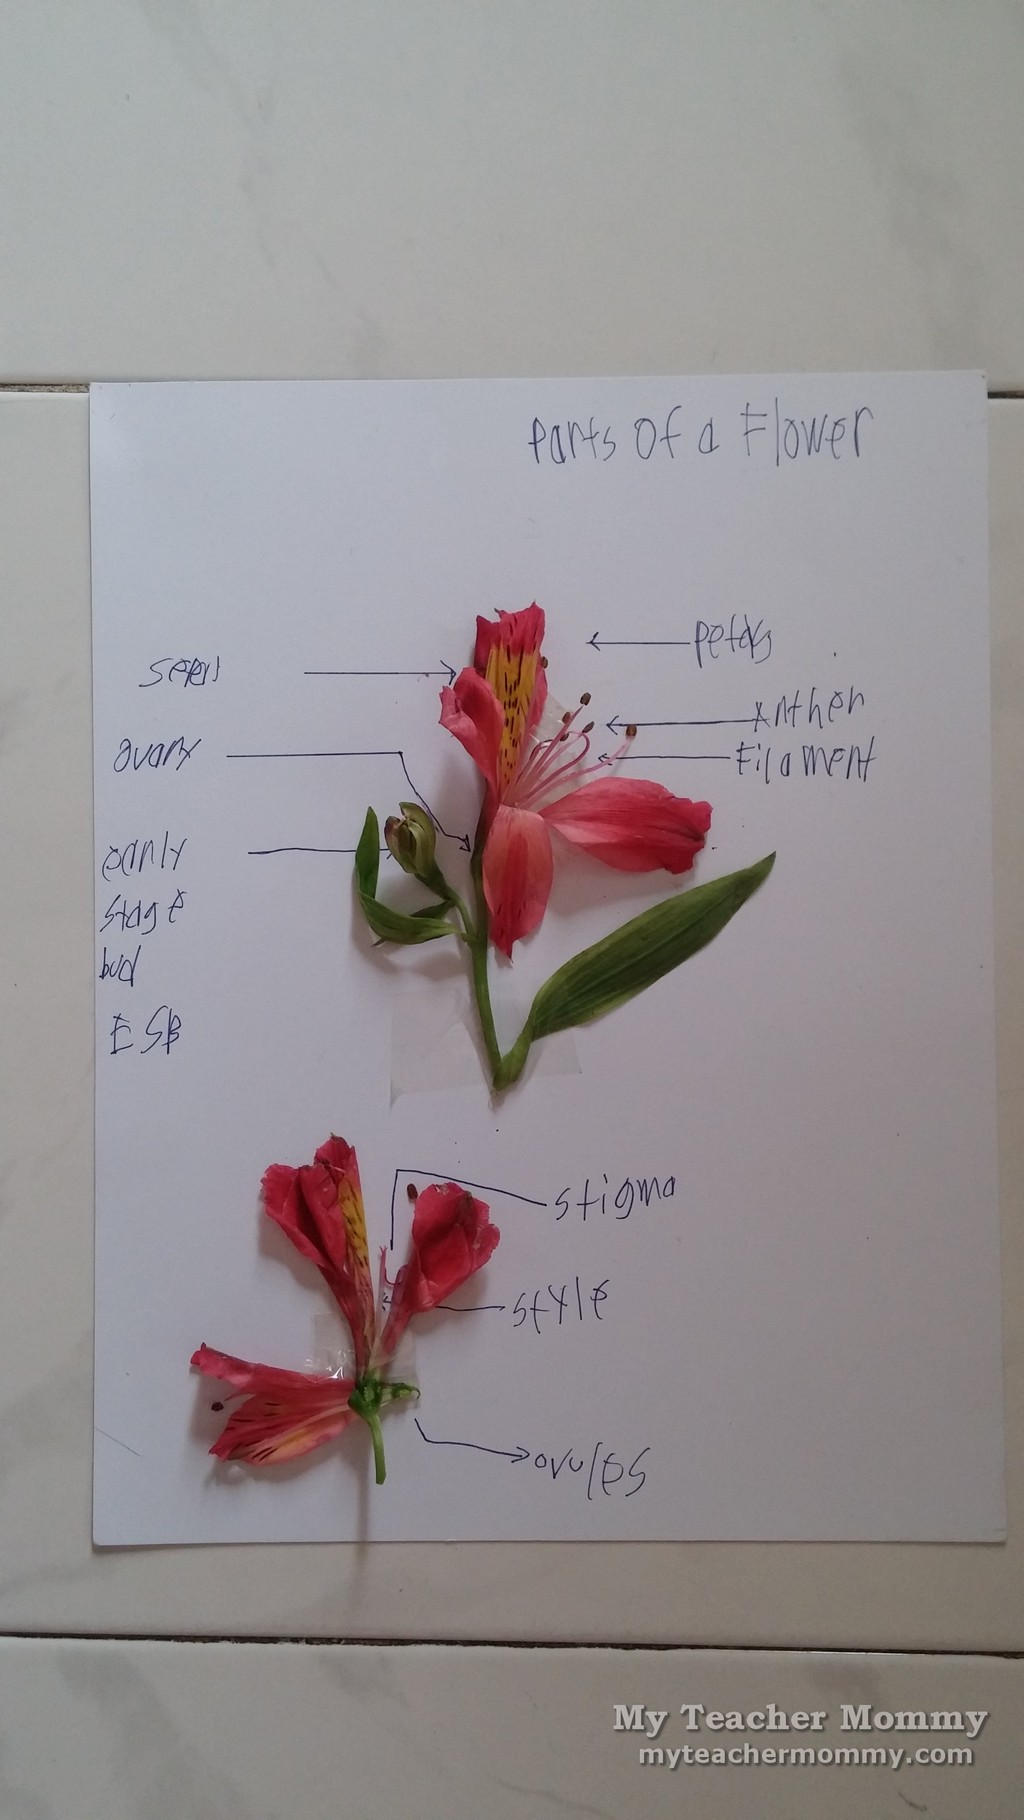 hight resolution of as labeling activities go identifying parts of the flower is fairly easy using a diagram from his science textbook as a guide motito correctly named all